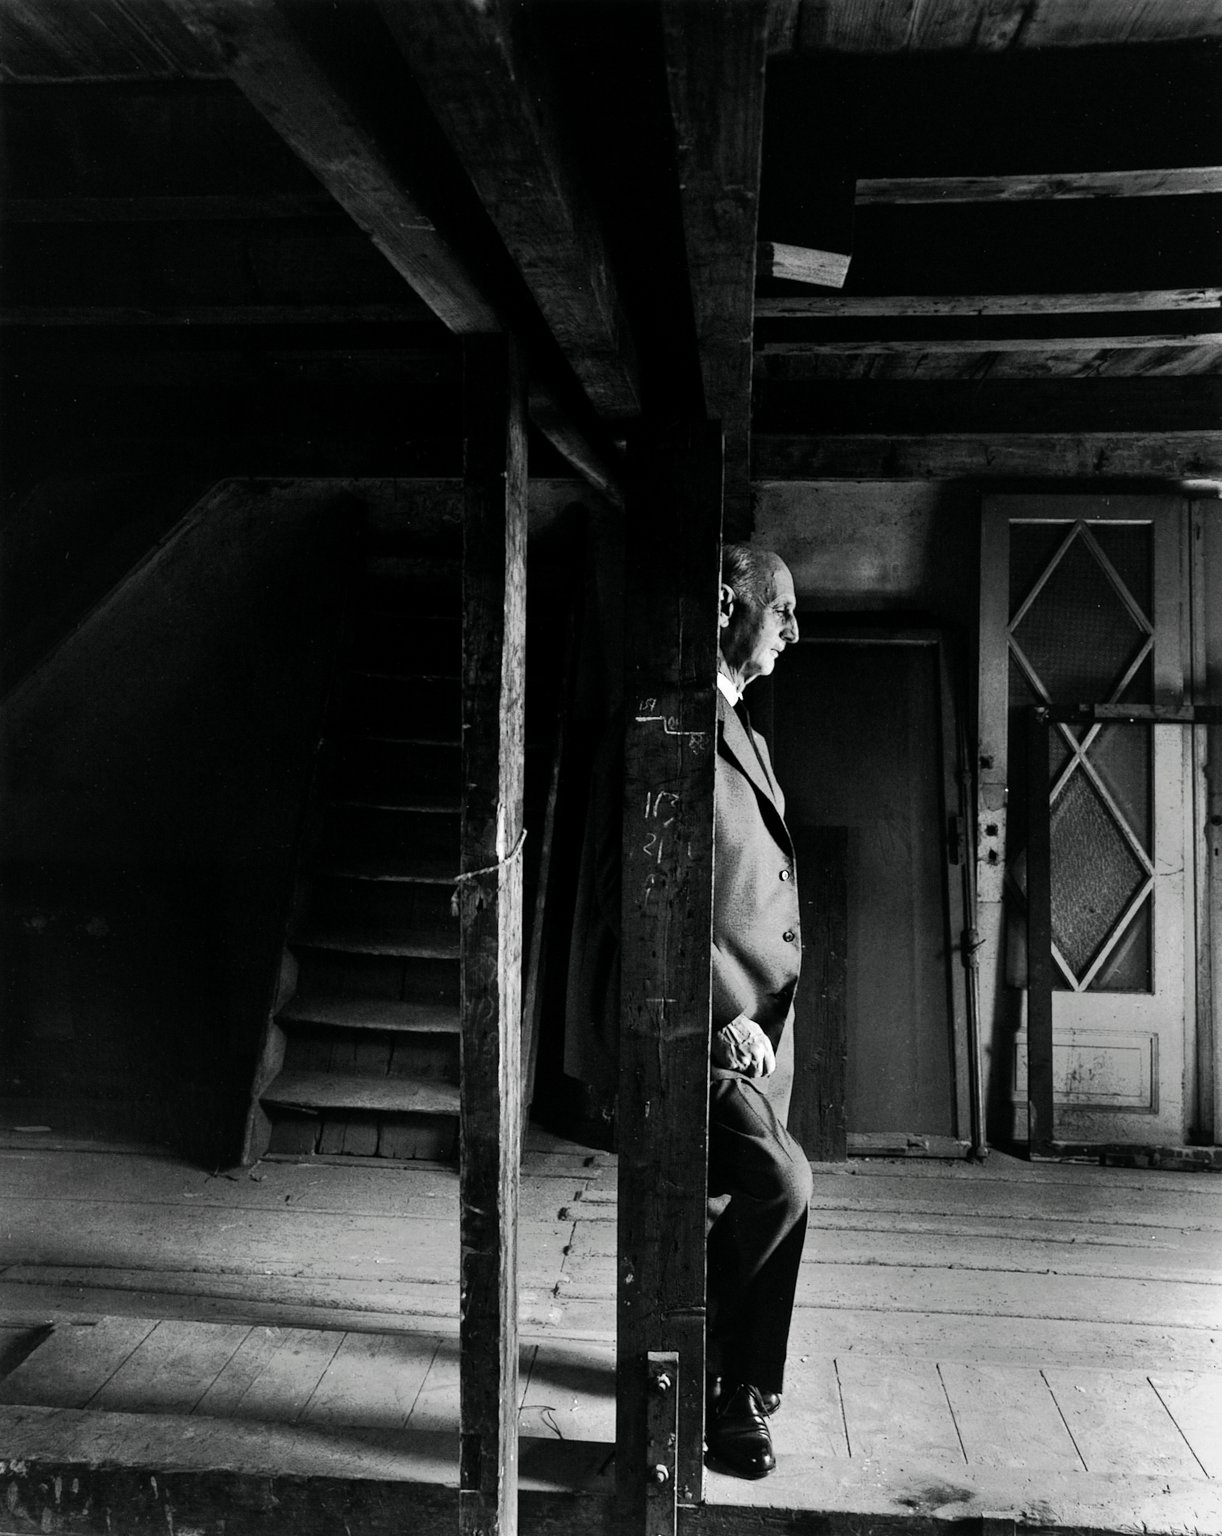 Otto Frank in the attic of the Secret Annex on 3 May 1960, the day the Anne Frank House opens to the public. According to photographer Arnold Newman, Otto was very emotional.